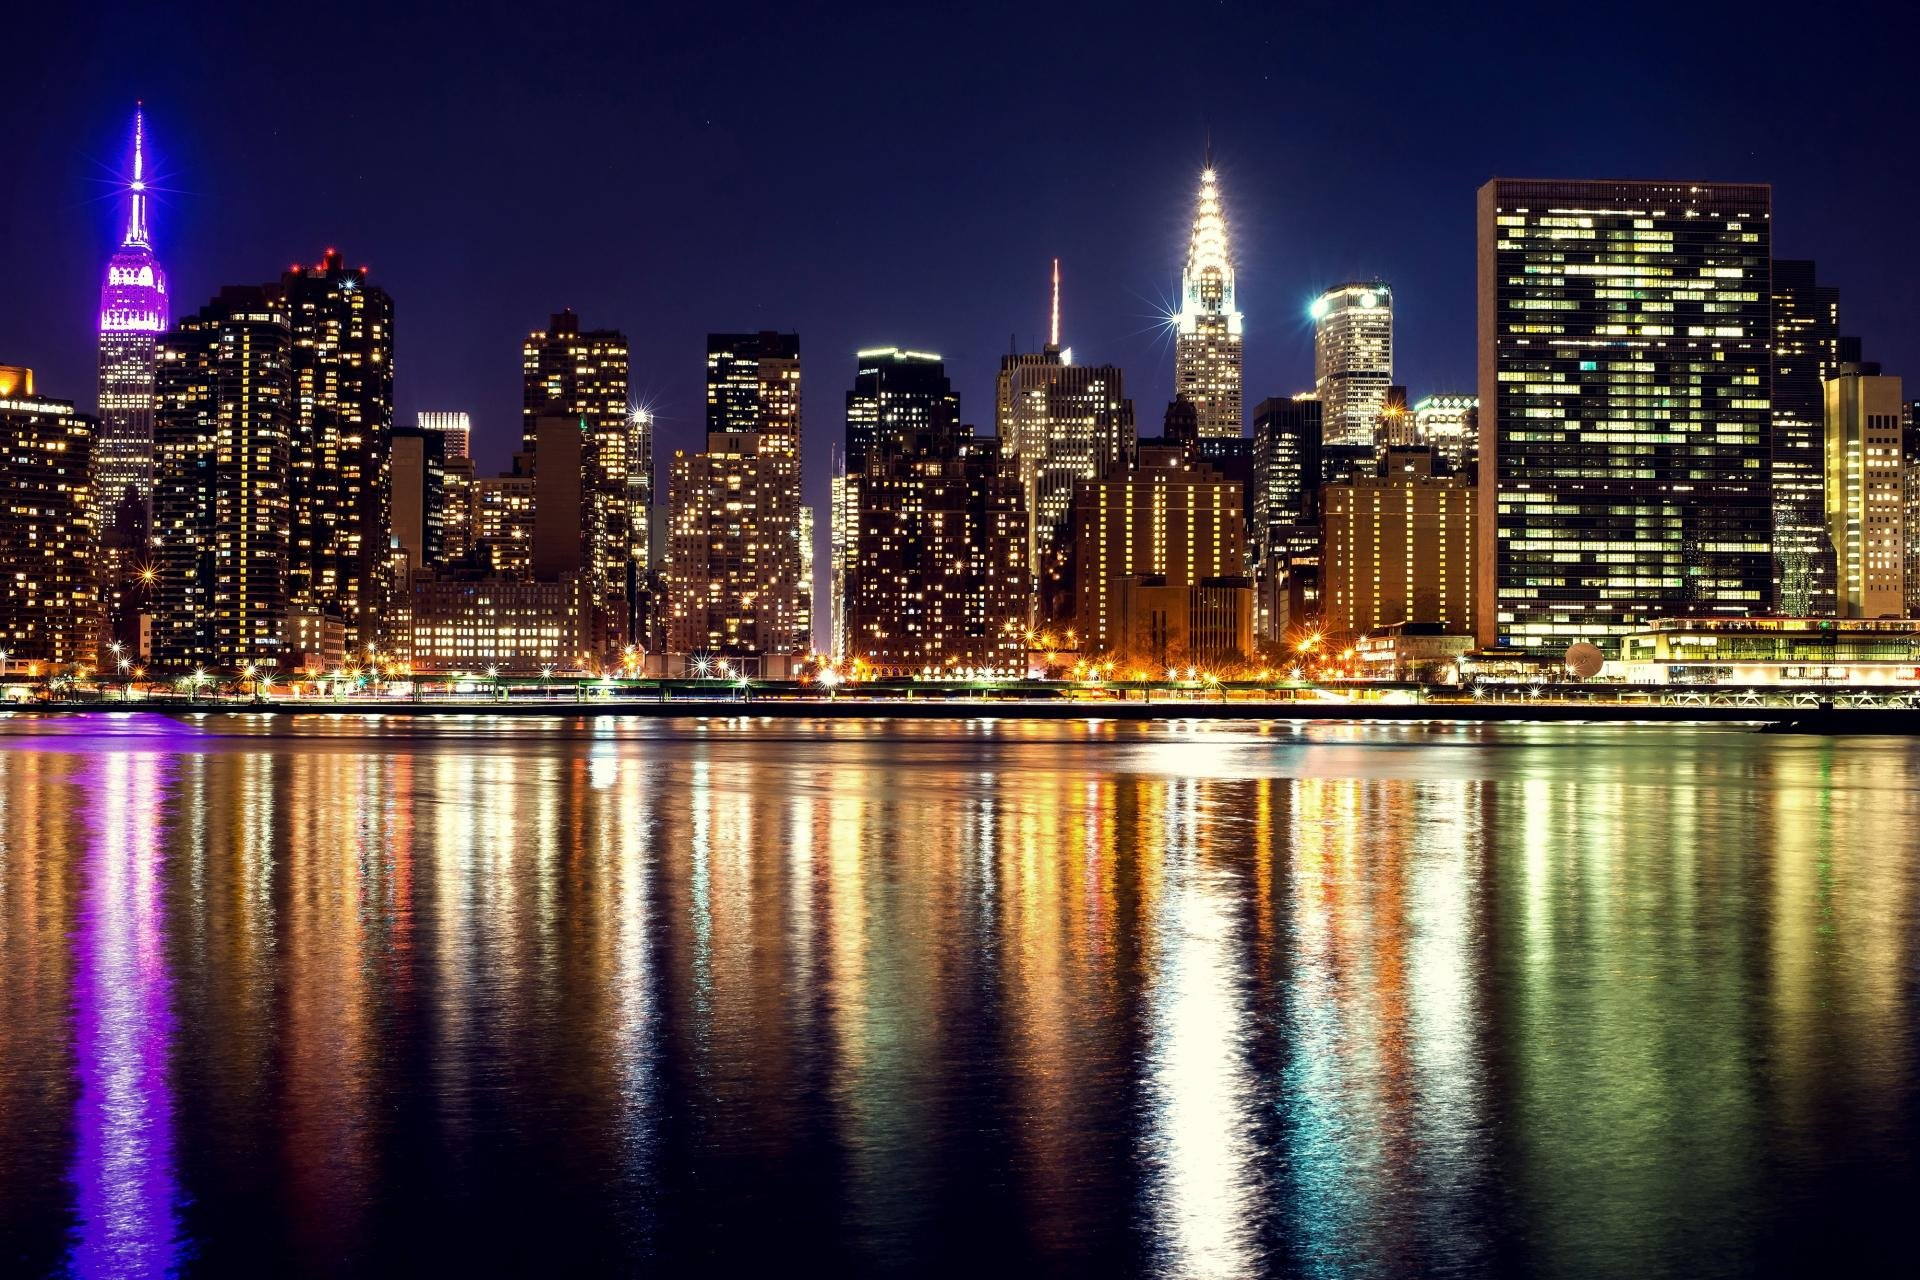 Free download New York background ID:486074 hd 1920x1280 for PC